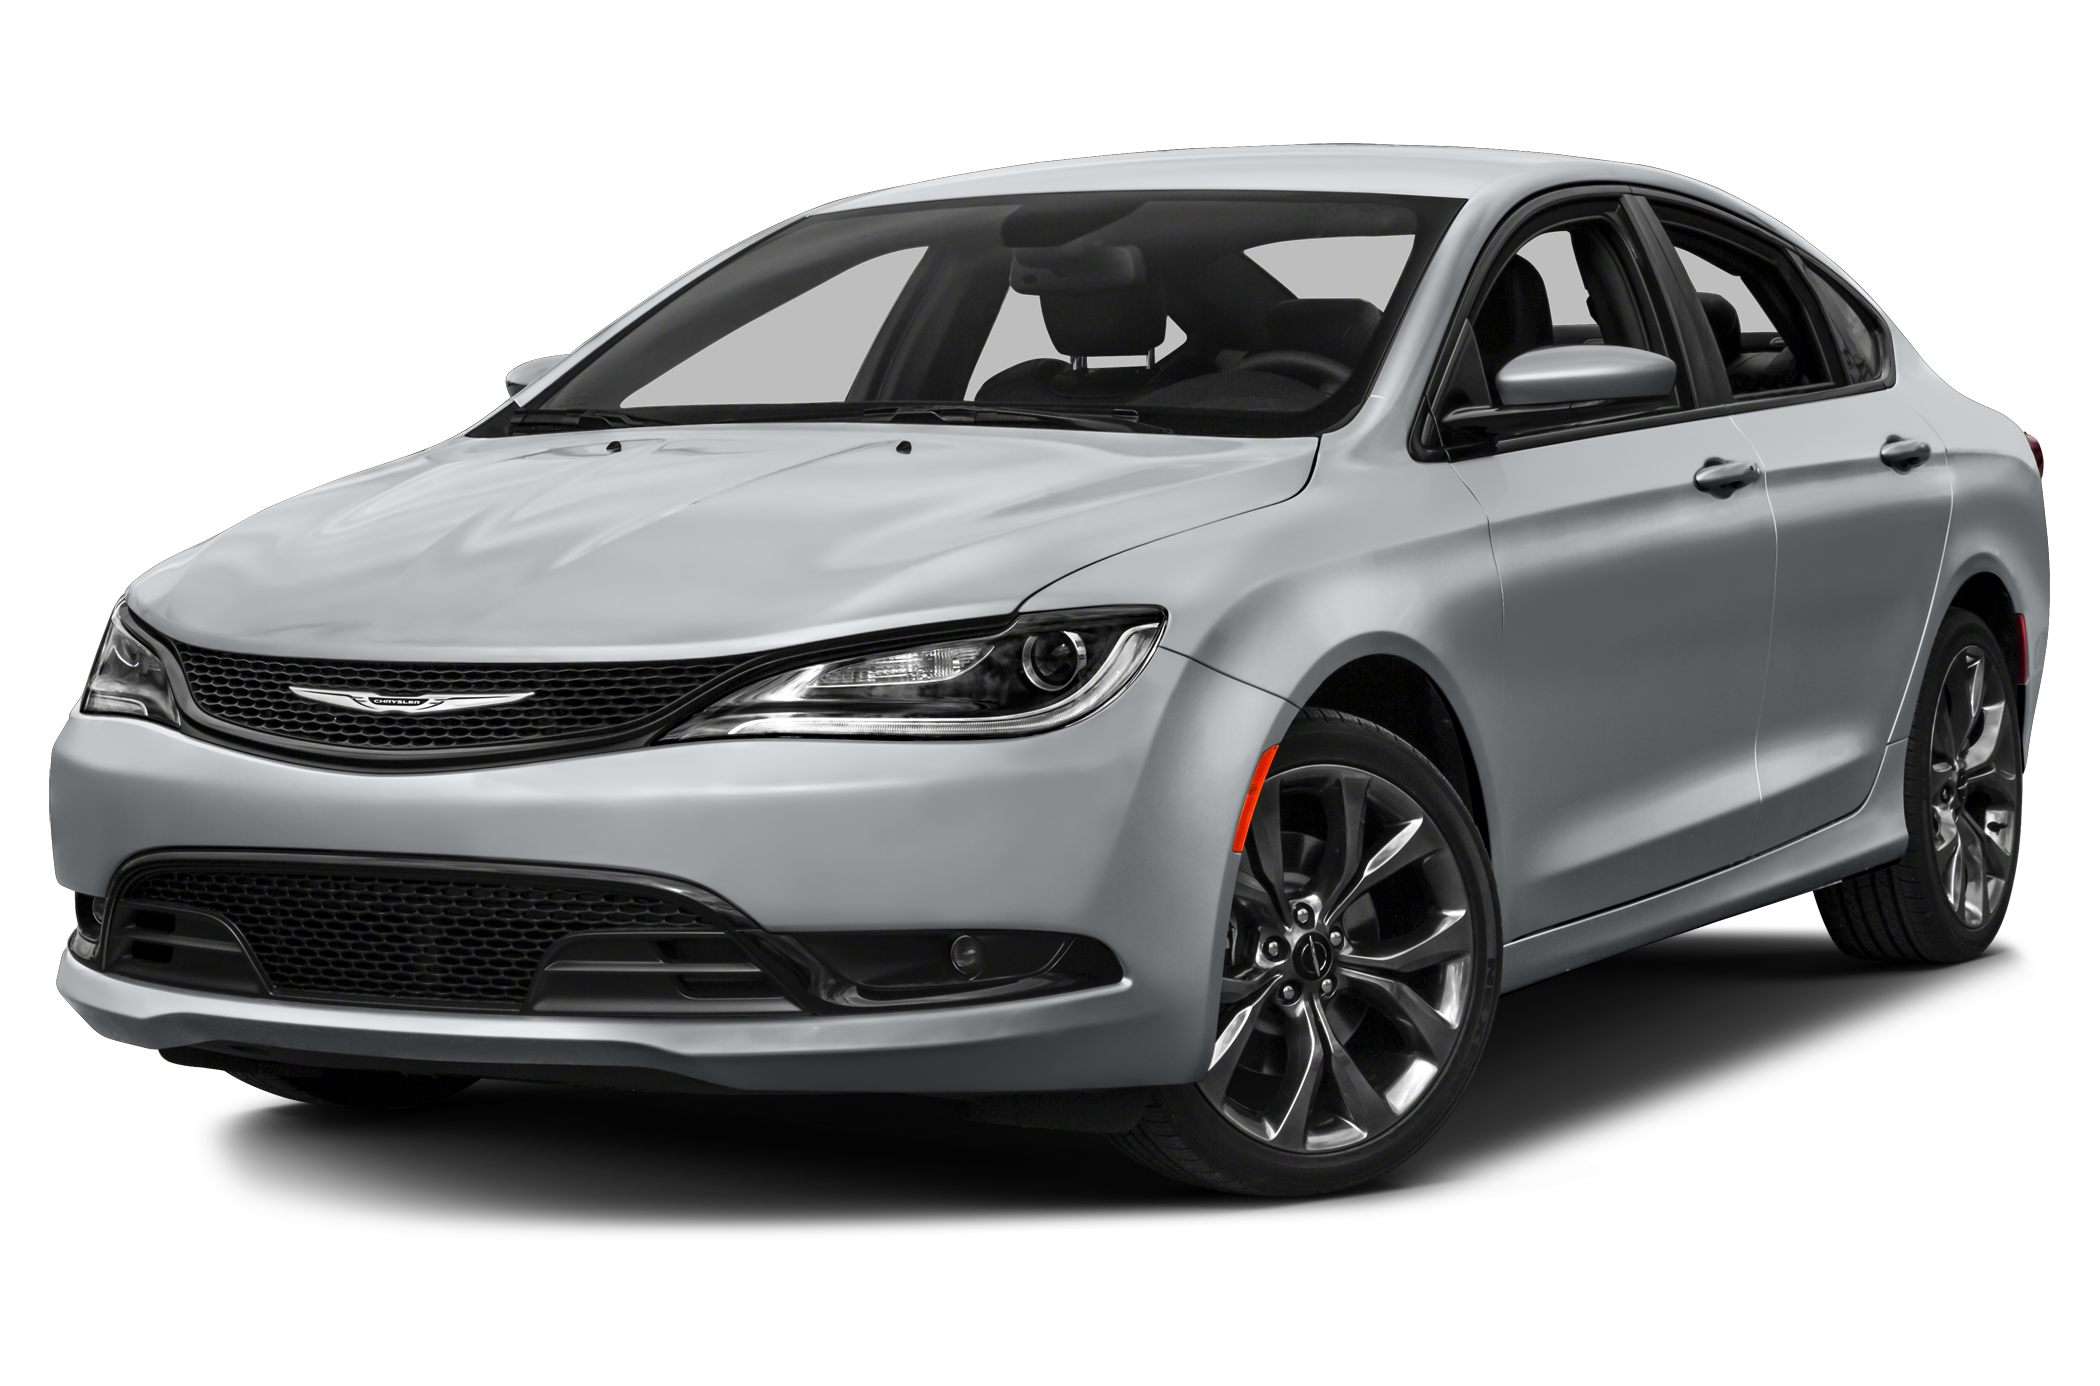 2015 Chrysler 200 S Sedan for sale in Baltimore for $25,764 with 0 miles.